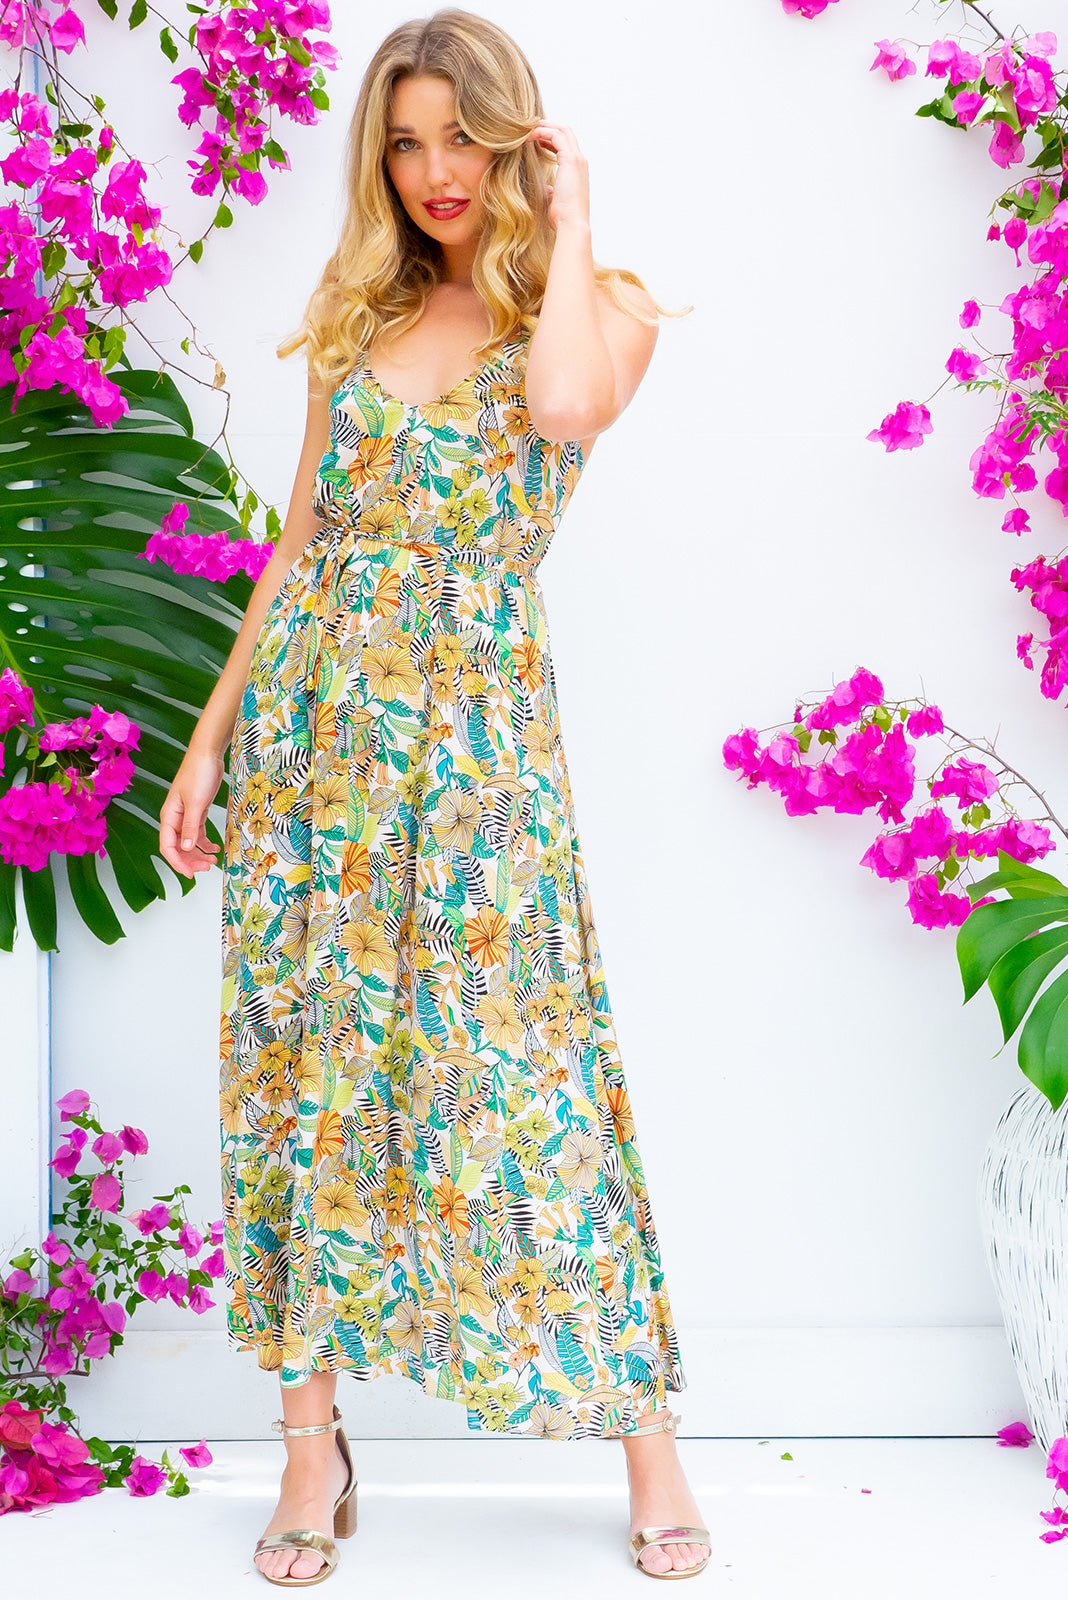 Meilani Green Amore Maxi Dress is a sexy strappy design featuring a low cut back and self coloured belt in a soft woven rayon with a jungle inspired cream and green tonal print